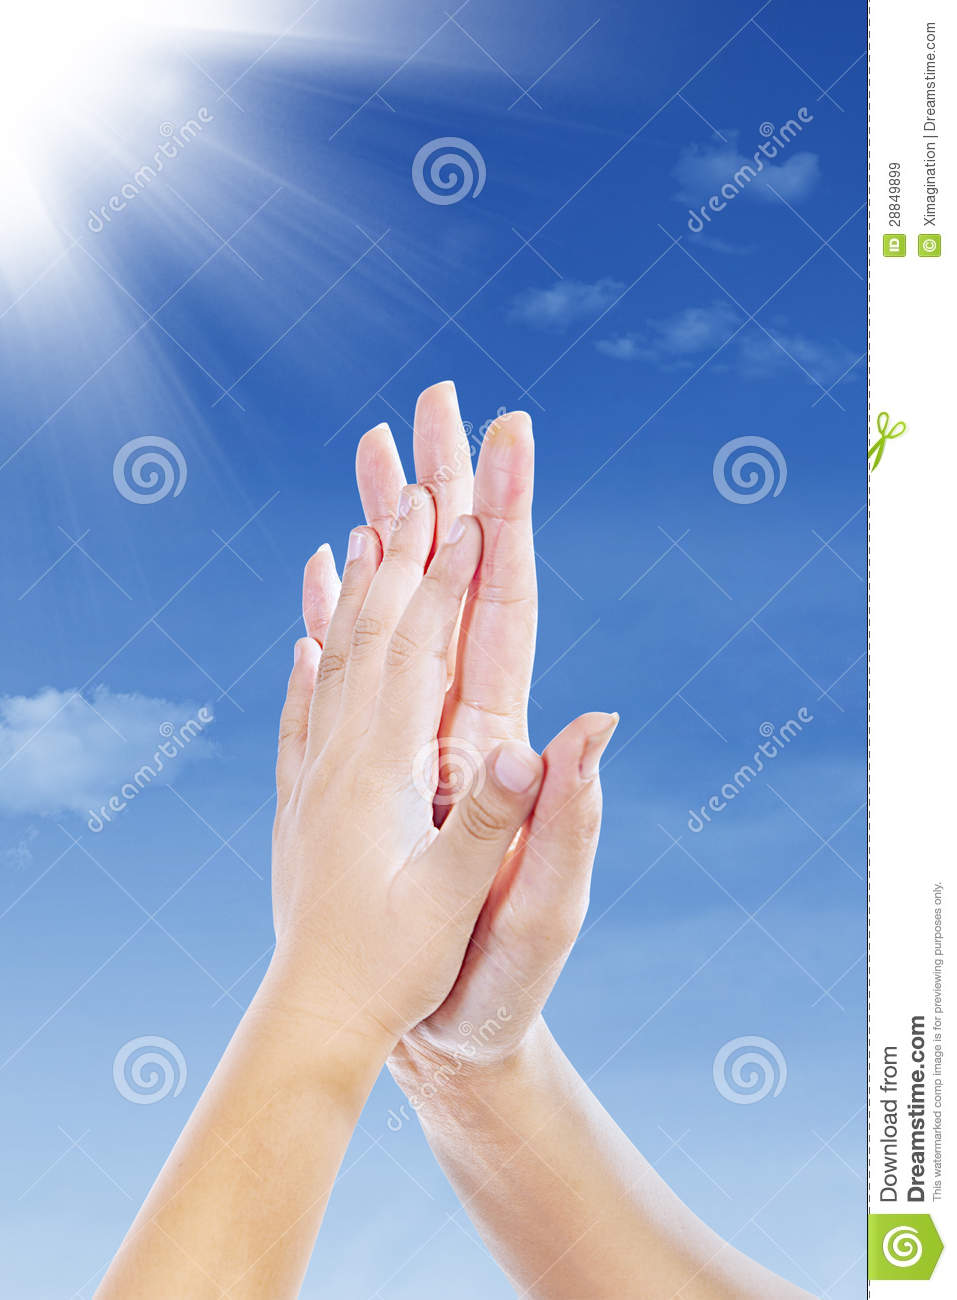 Hand Clap Gestures Outdoor Royalty Free Stock Images